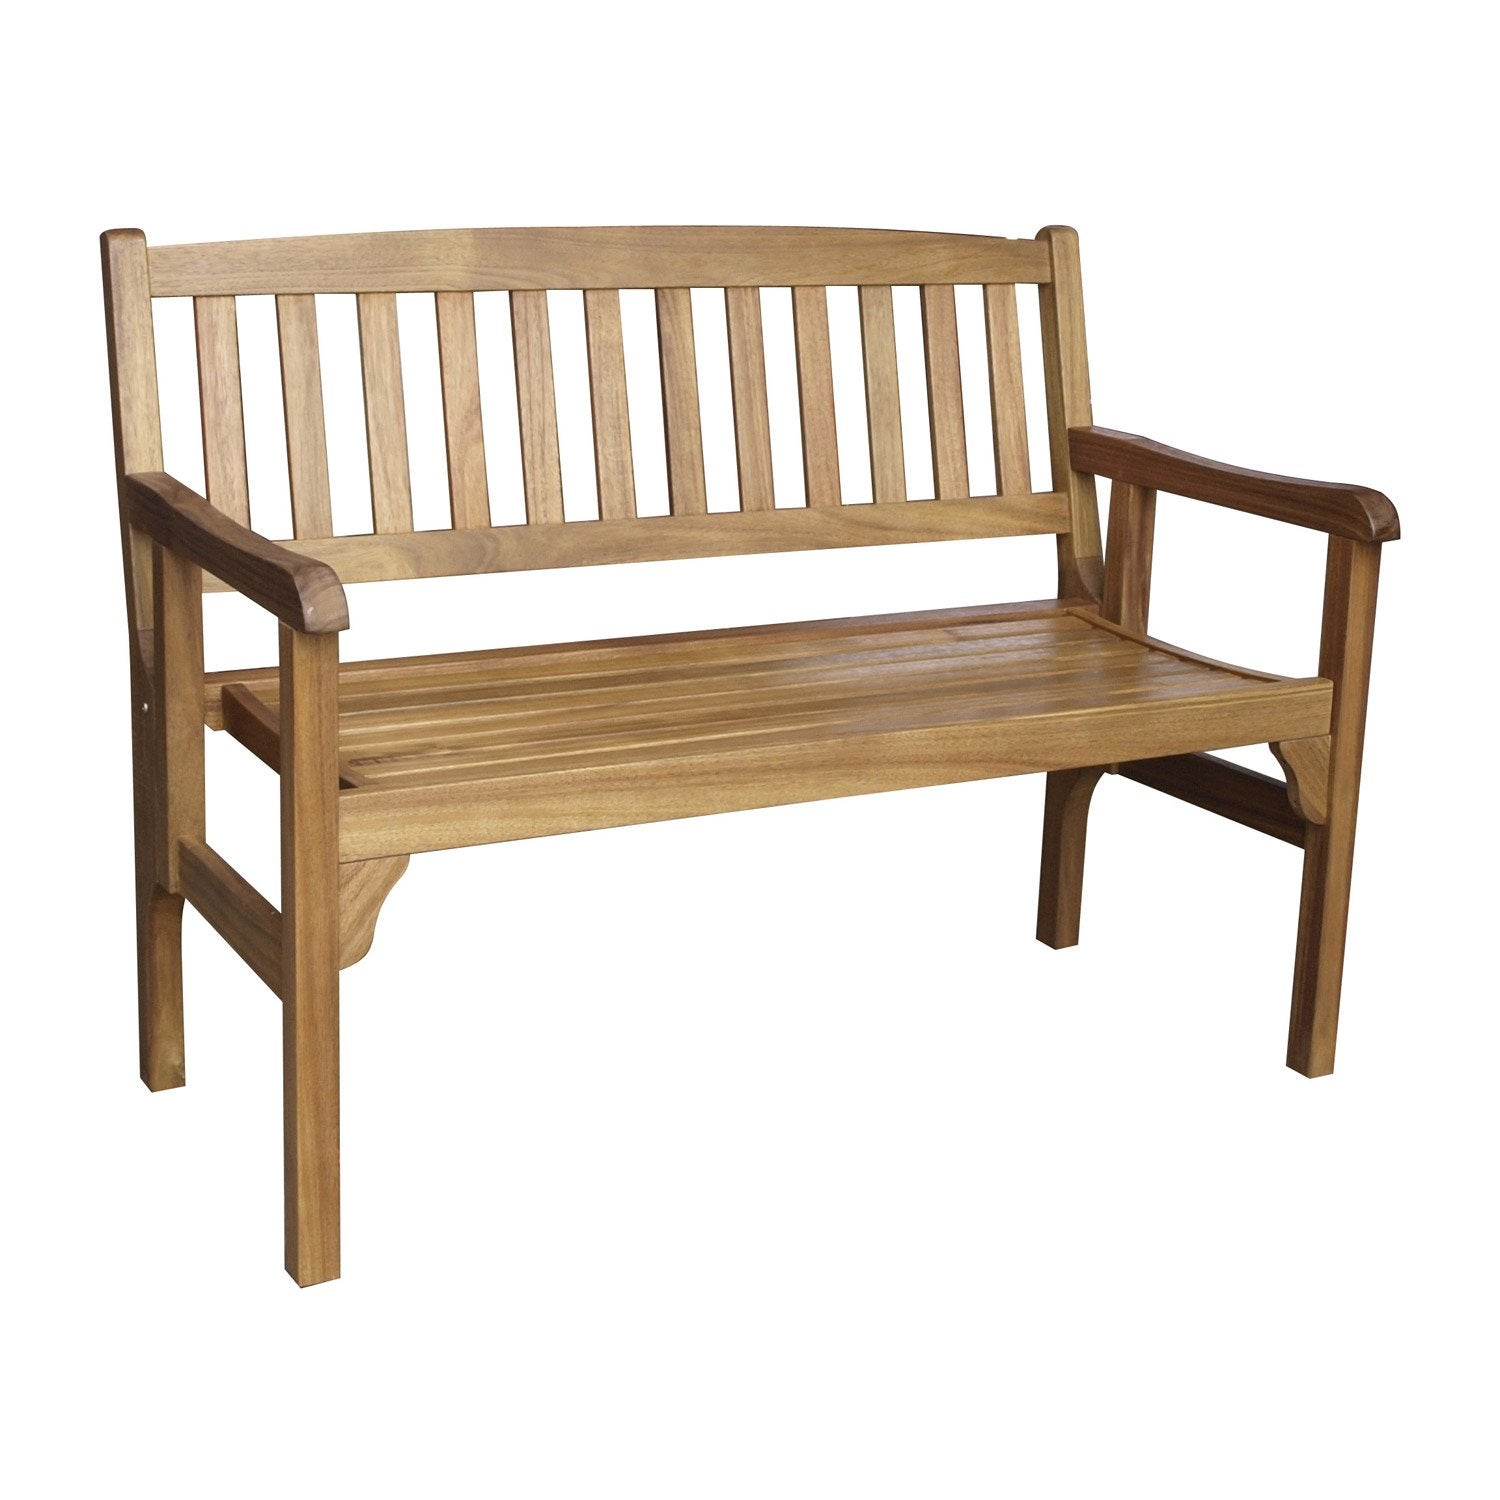 Banc 2 places de jardin leroy merlin - Banc de jardin 2 places ...